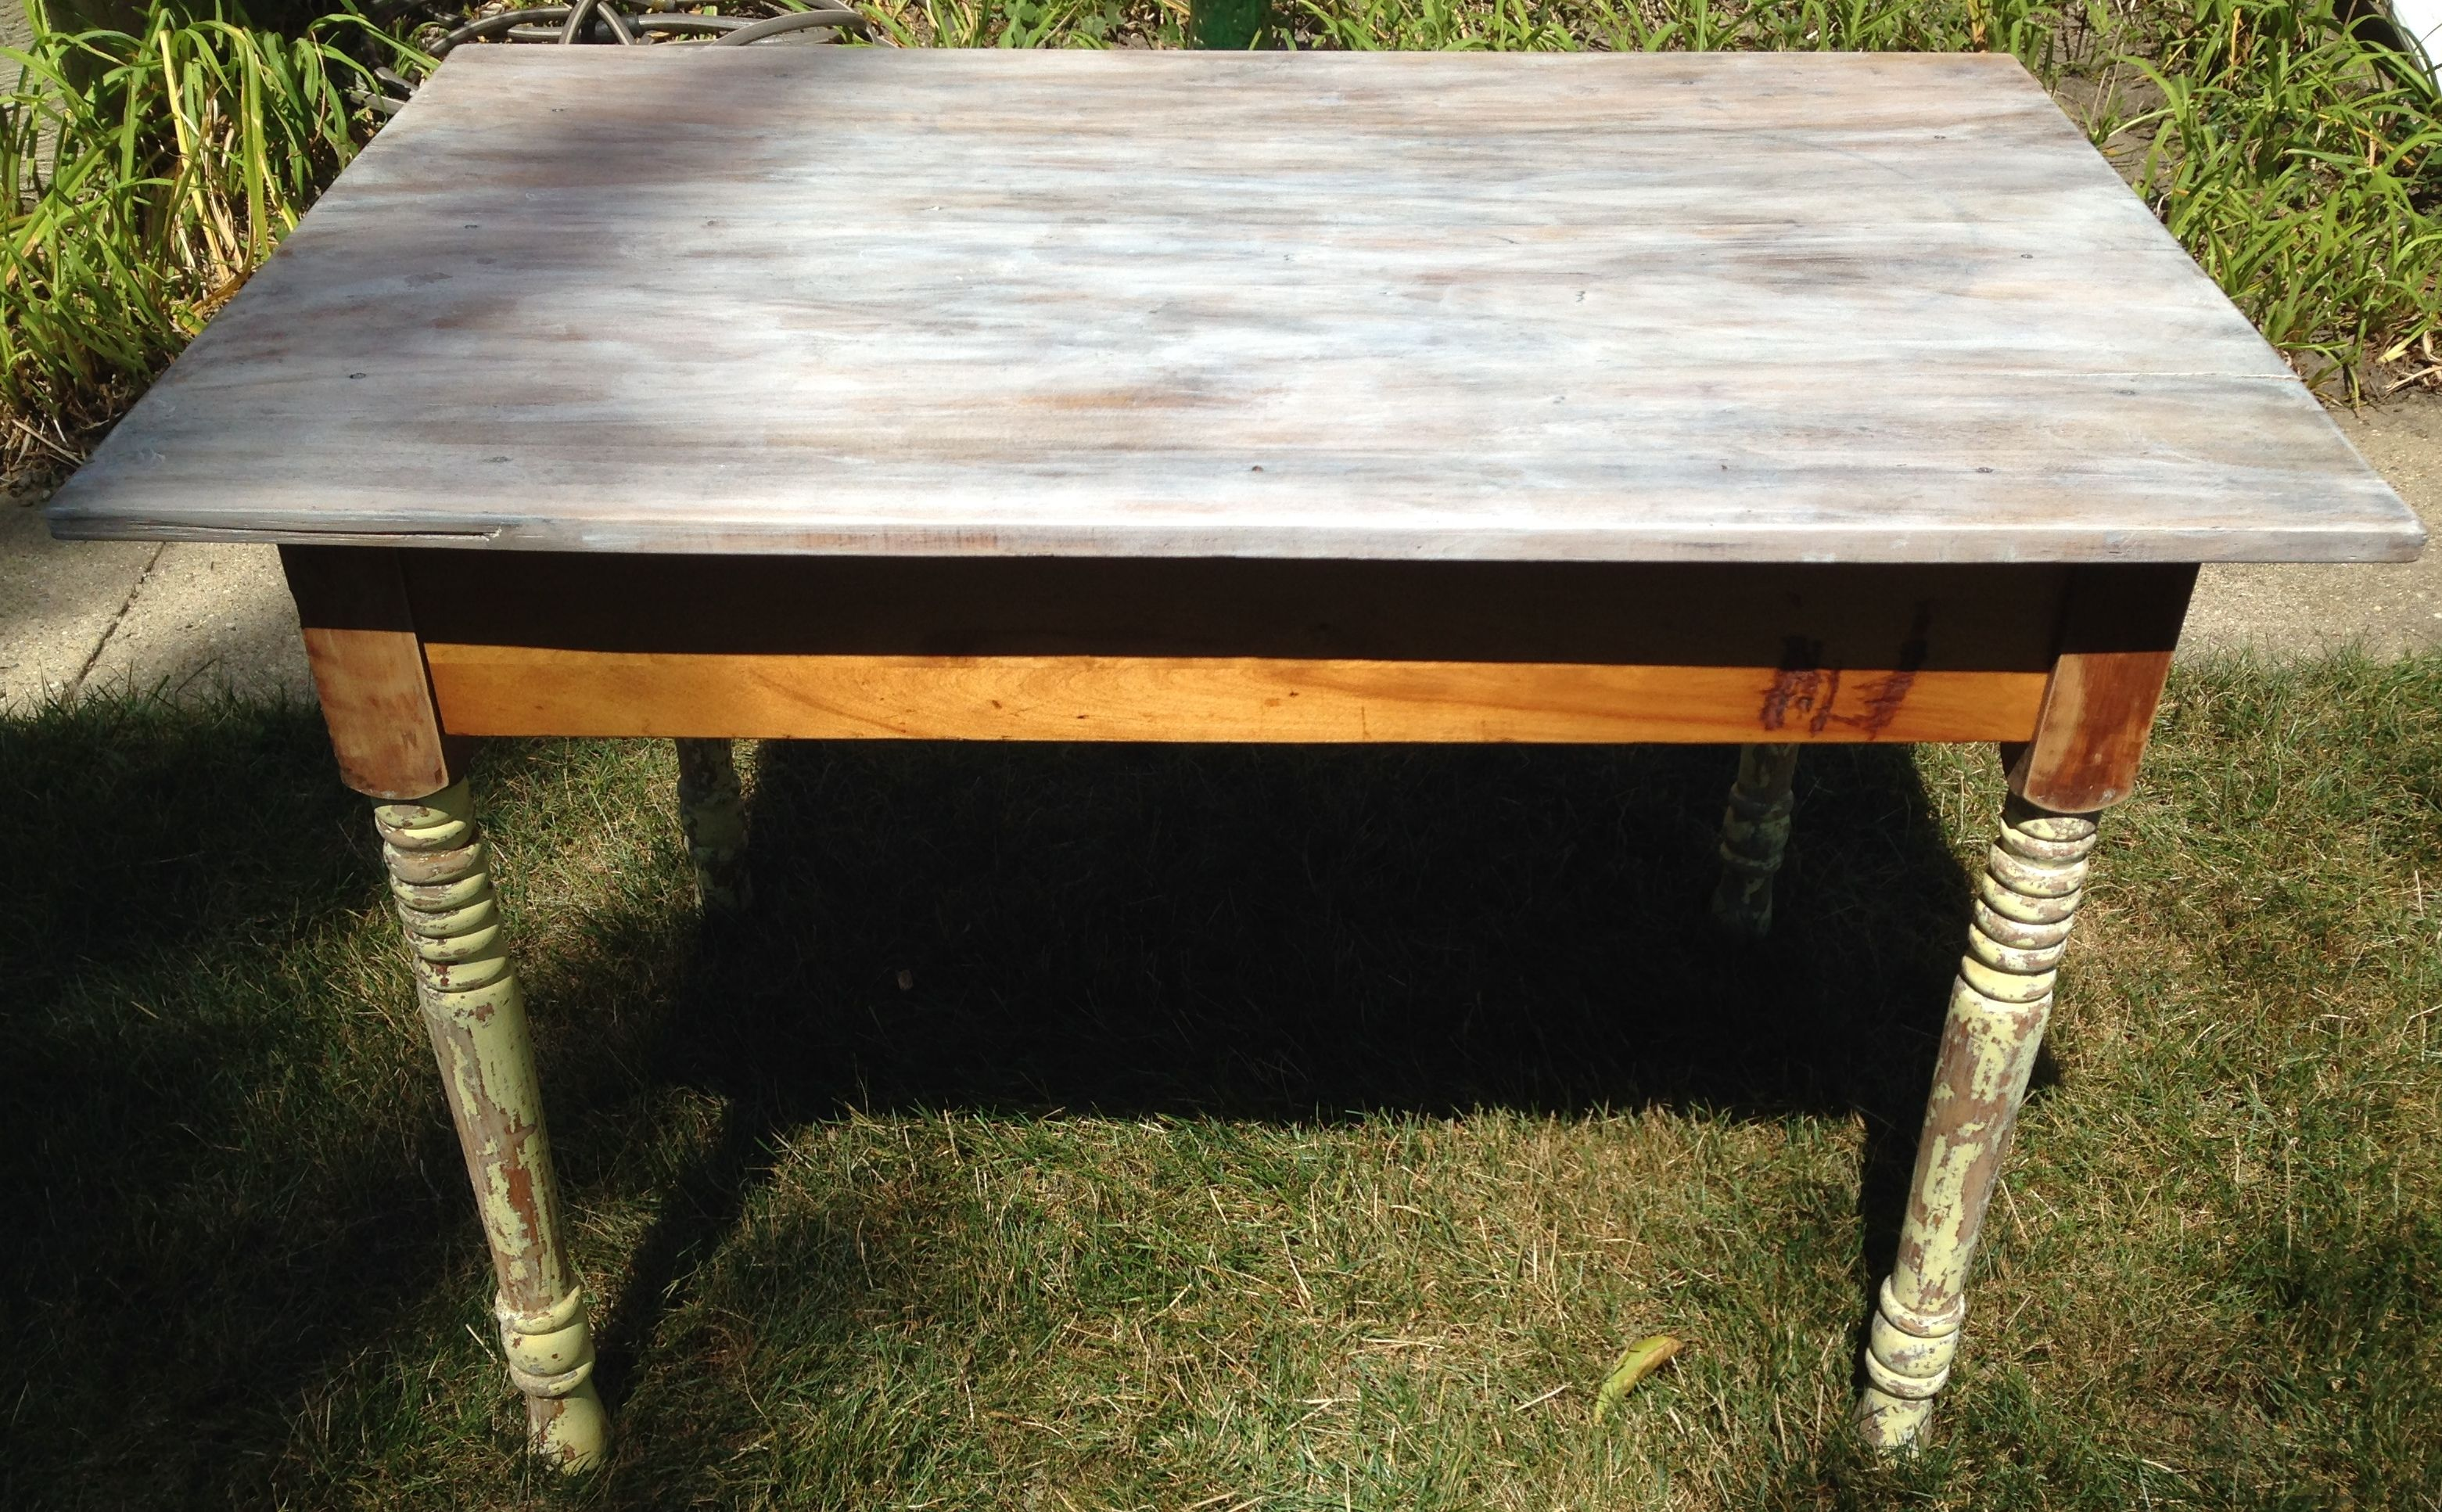 Wood Table With A Formerly Warped Top Fixed The Warp Then Stained The Top Three Colors Whitewash Ebony And Classic Oak Furniture Fix Wood Table Table